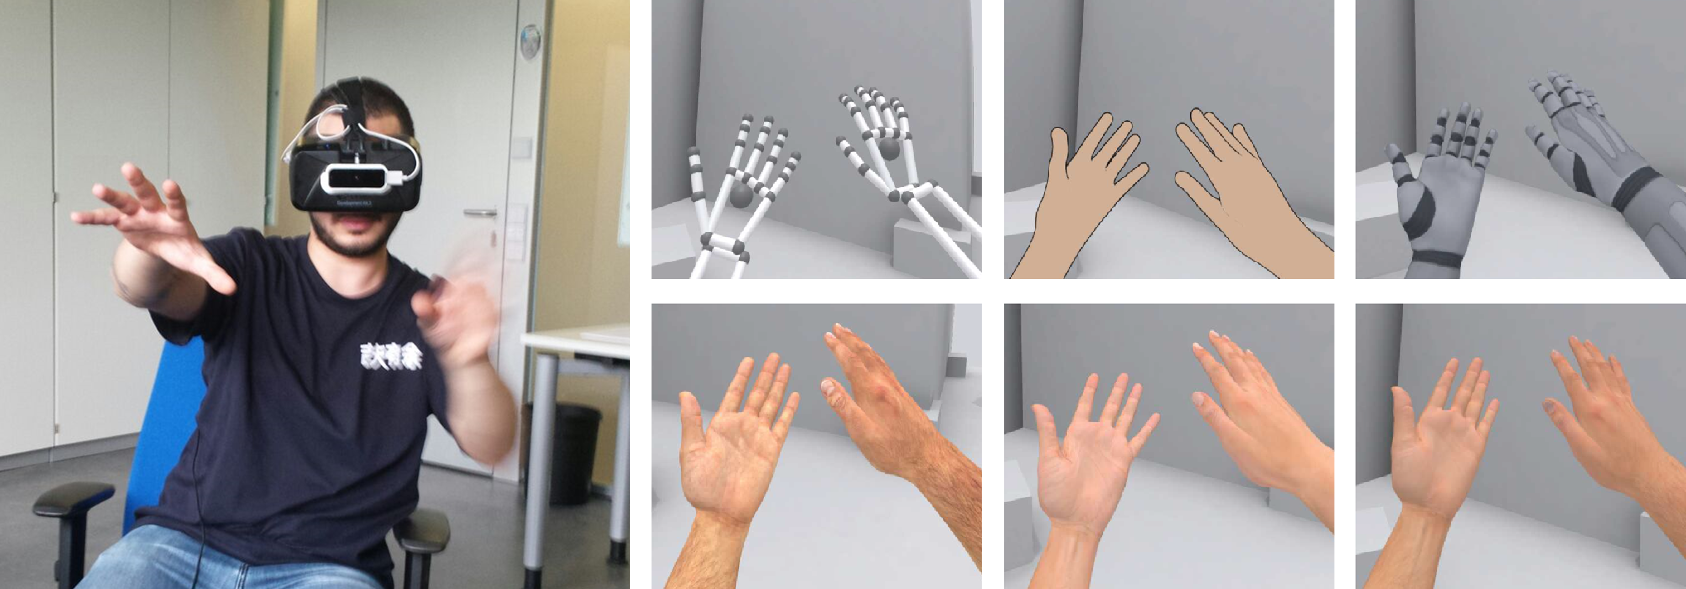 """These are not my hands!"": Effect of Gender on the Perception of Avatar Hands in Virtual Reality"